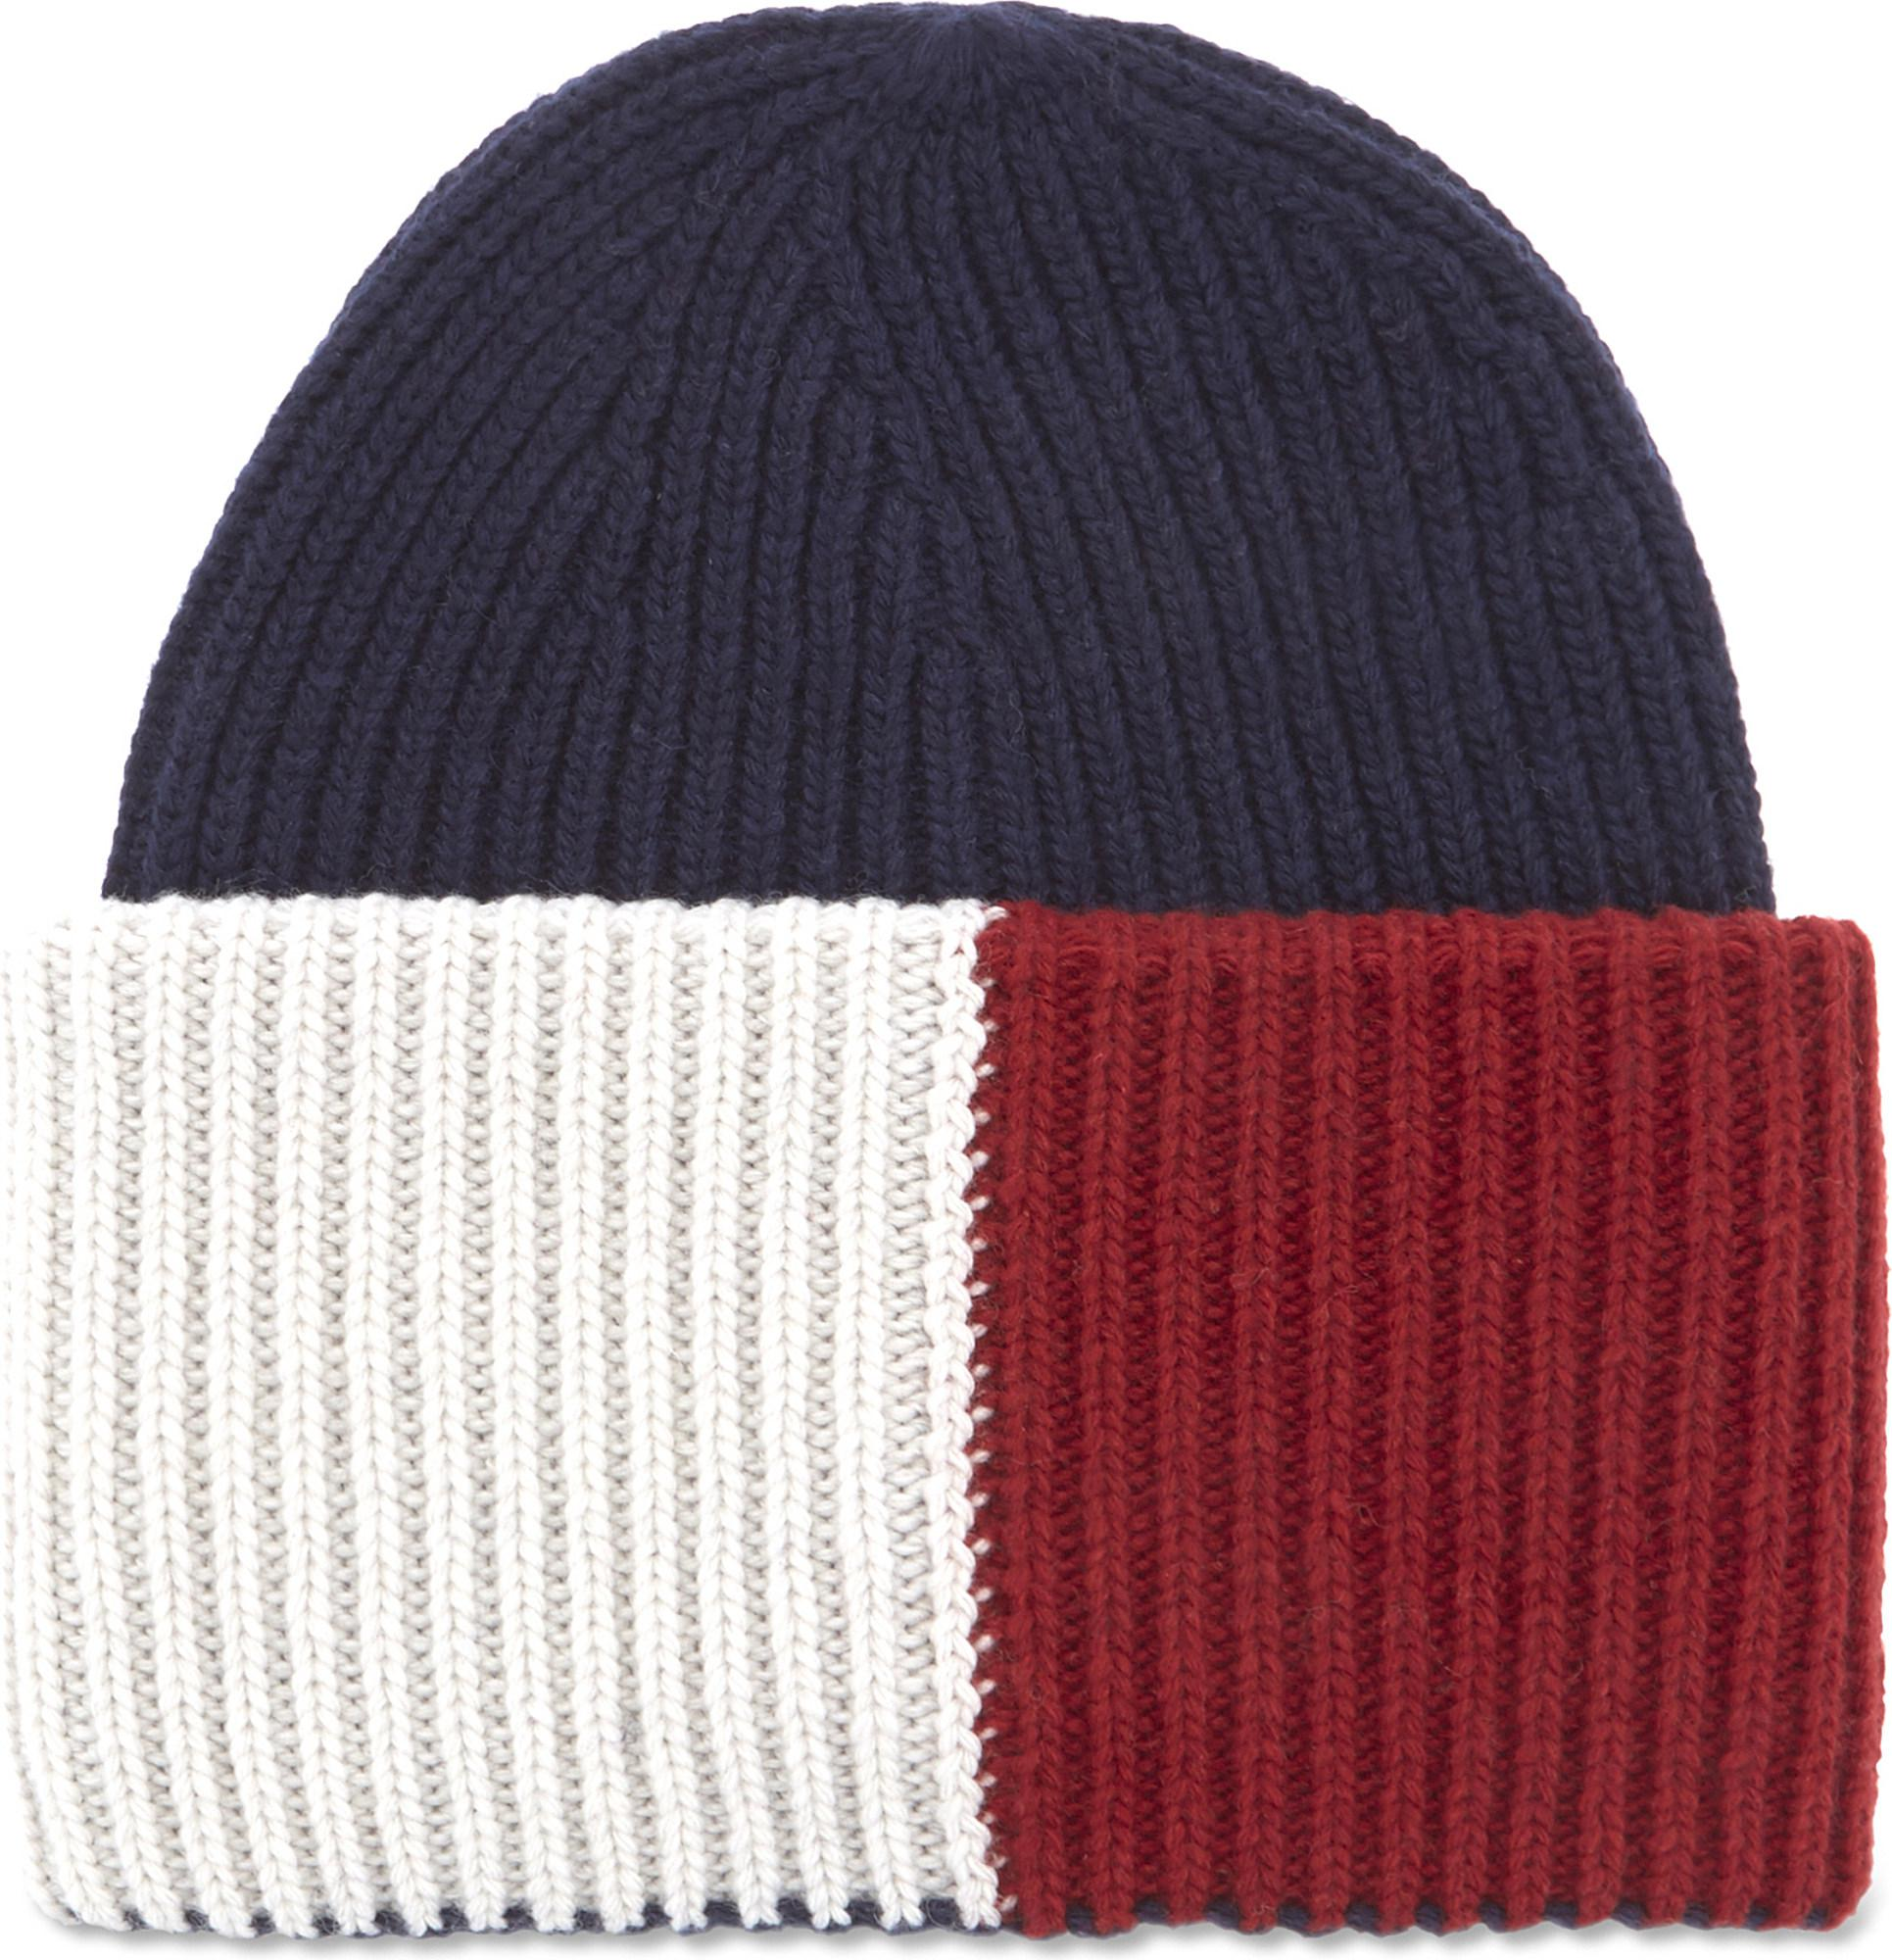 Lyst - Tommy Hilfiger Oversized Wool-blend Beanie Hat in Blue for Men 91914590035